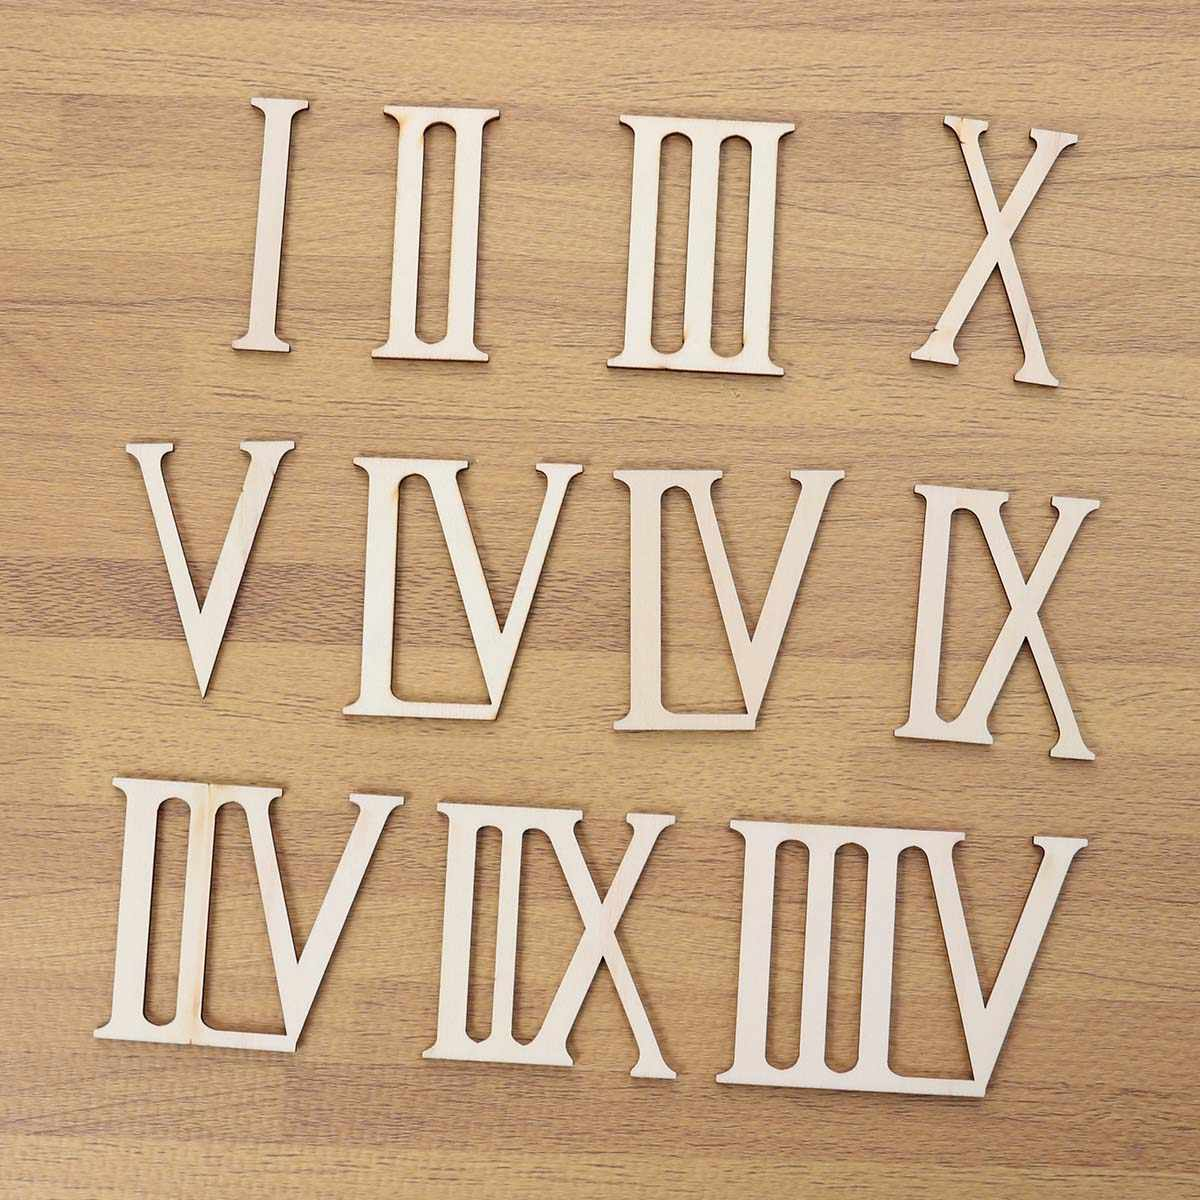 12pcs Wooden Roman Numerals Shape Wood Numerics Numbers DIY Household Bedroom Ornaments Craft Decoration Gift